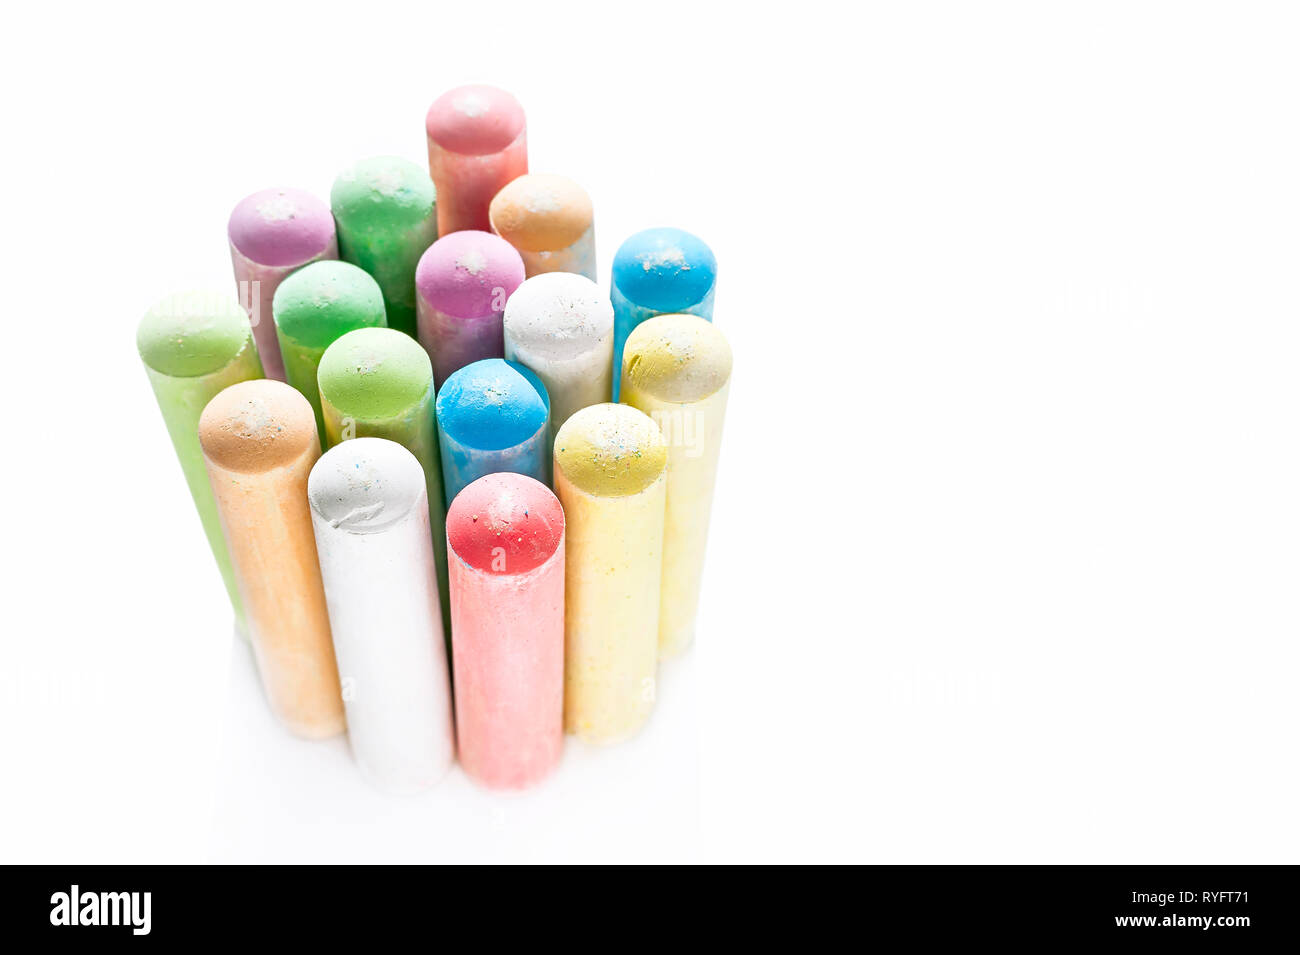 Jumbo Sidewalk Chalk, Assorted Colors, Bold Tips on White Background. Side View. Stock Photo